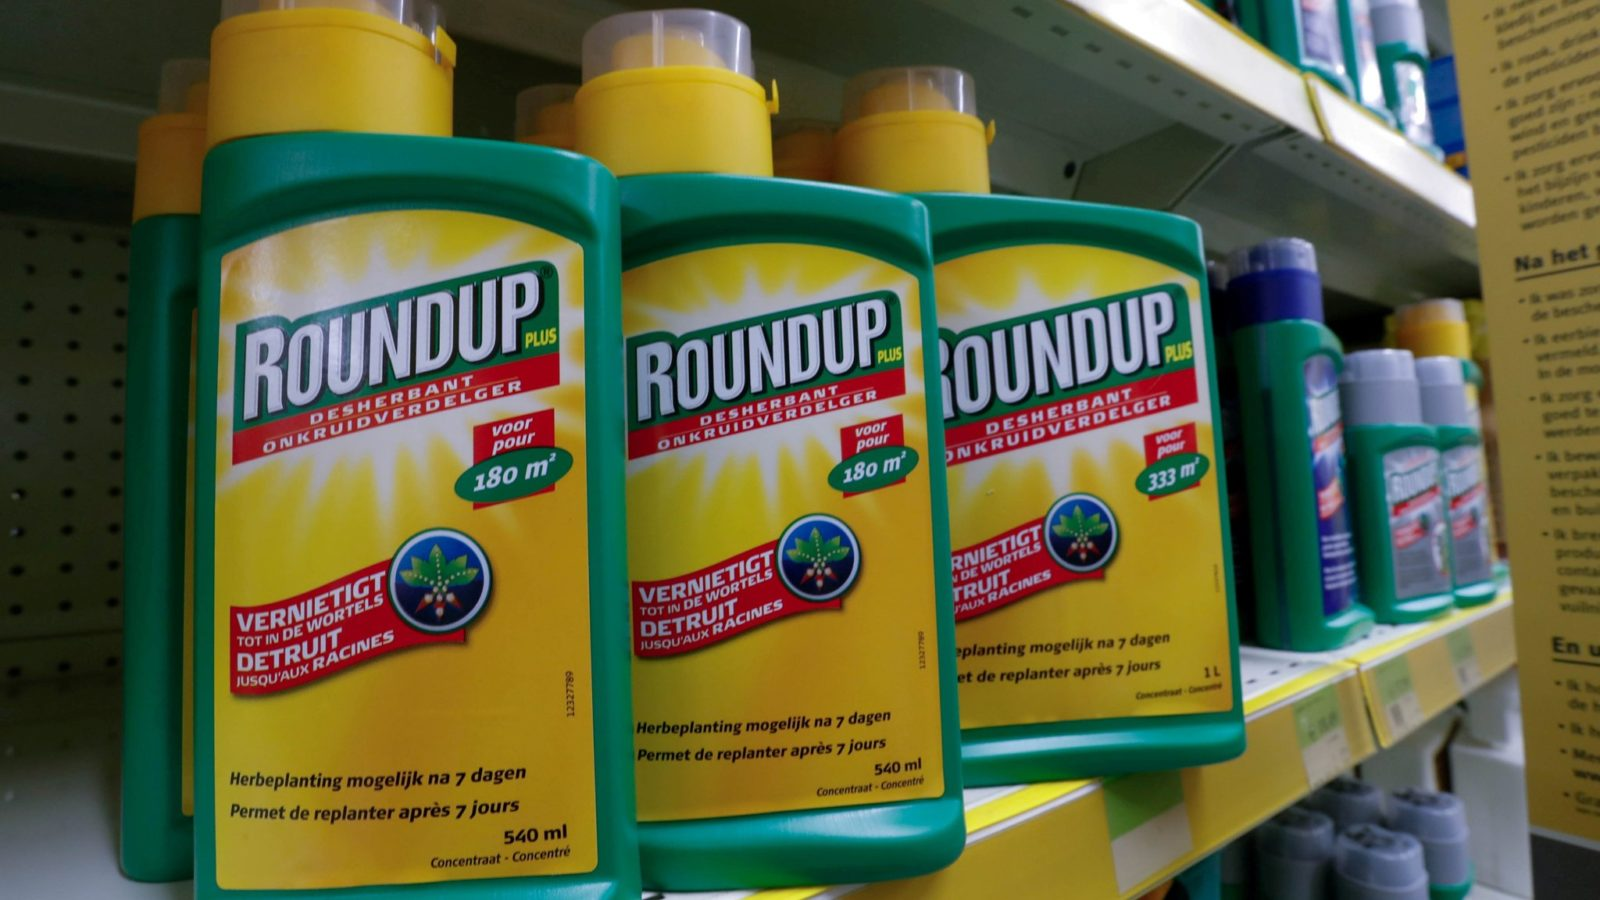 Roundup Cases: An Update